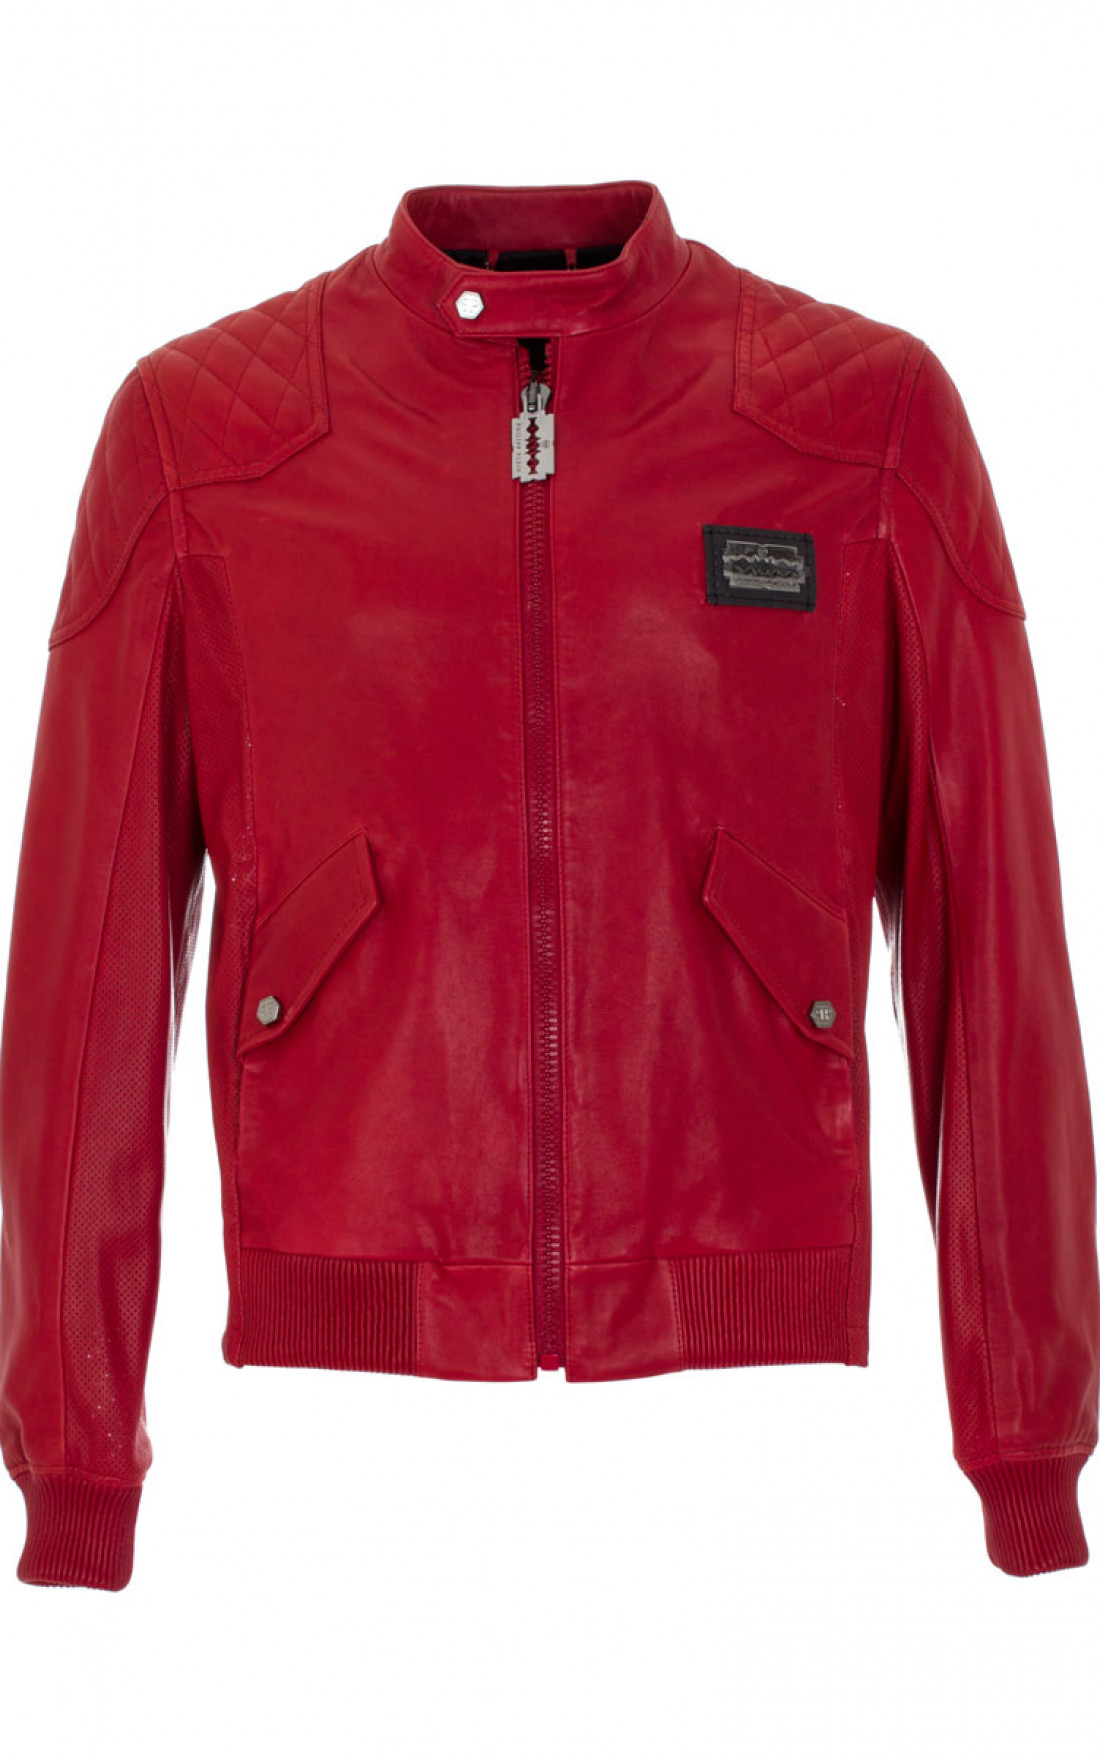 f8b9dbf0a27 Philipp Plein - 'The Risk' Jacket Red Front (SS14-HM211494) ...